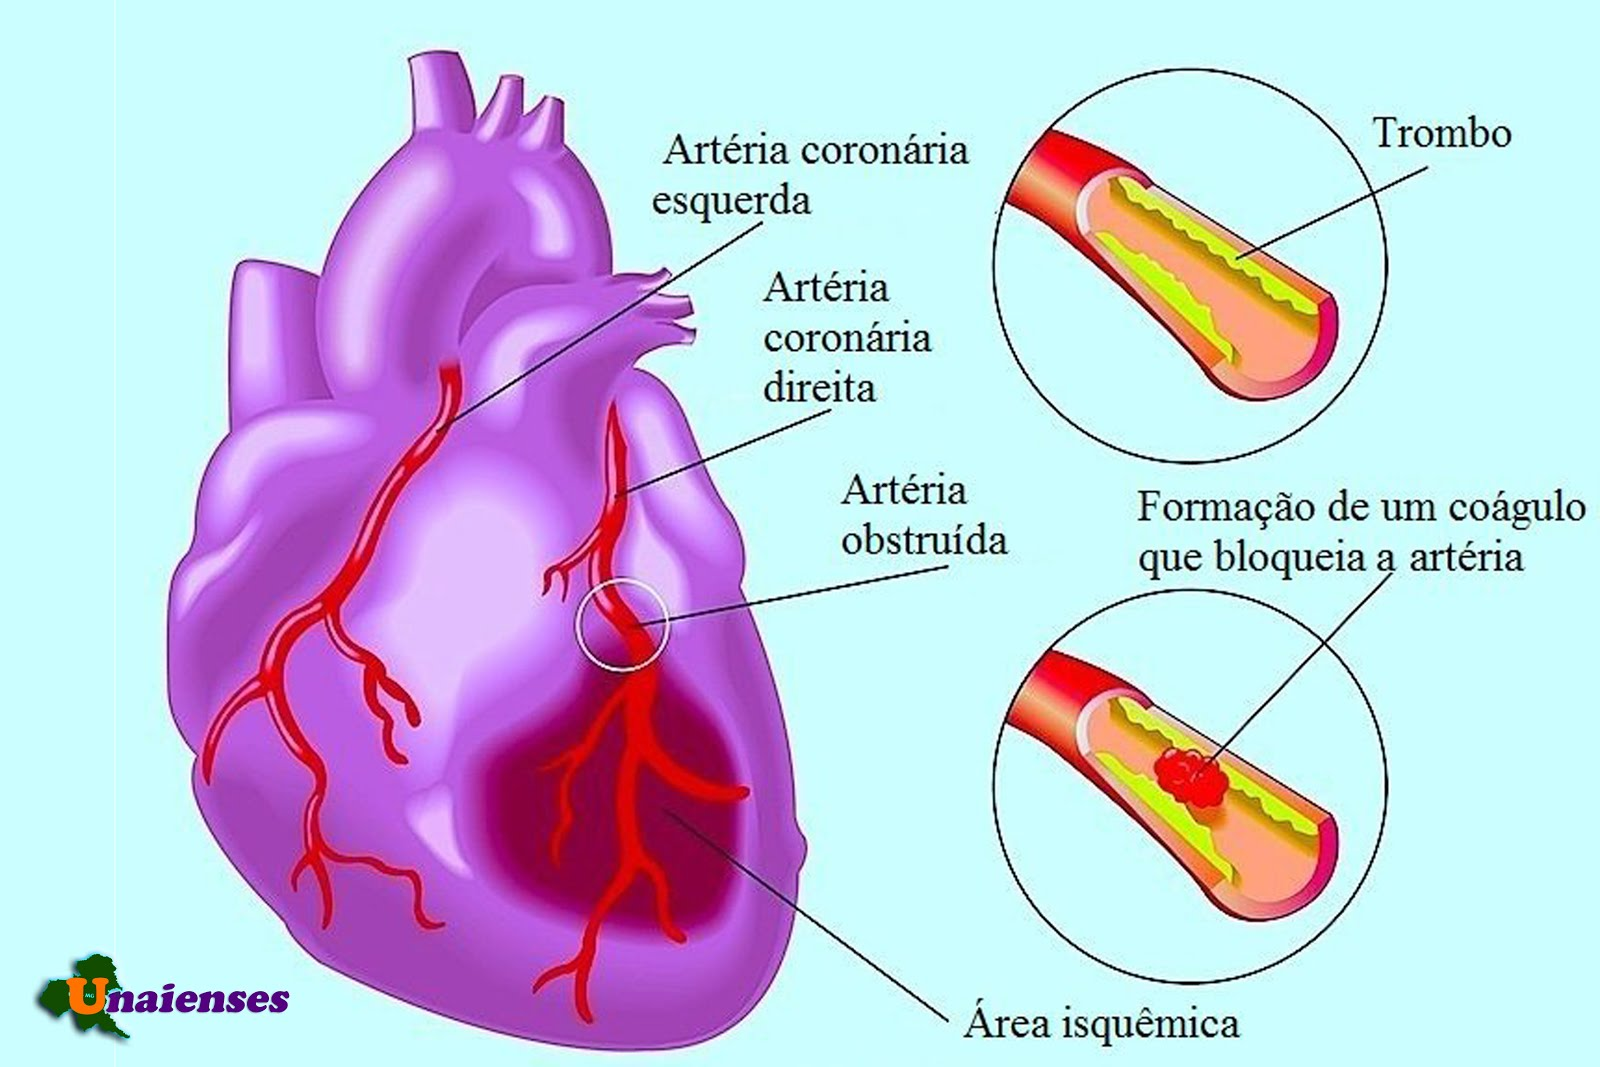 taking a look at myocardial infraction In myocardial infarction, it has been shown to be effective in the long-term prevention of arterial occlusion and reocclusion  in low doses, aspirin possesses a selectivity for the inhibition of platelet thromboxane formation [44].